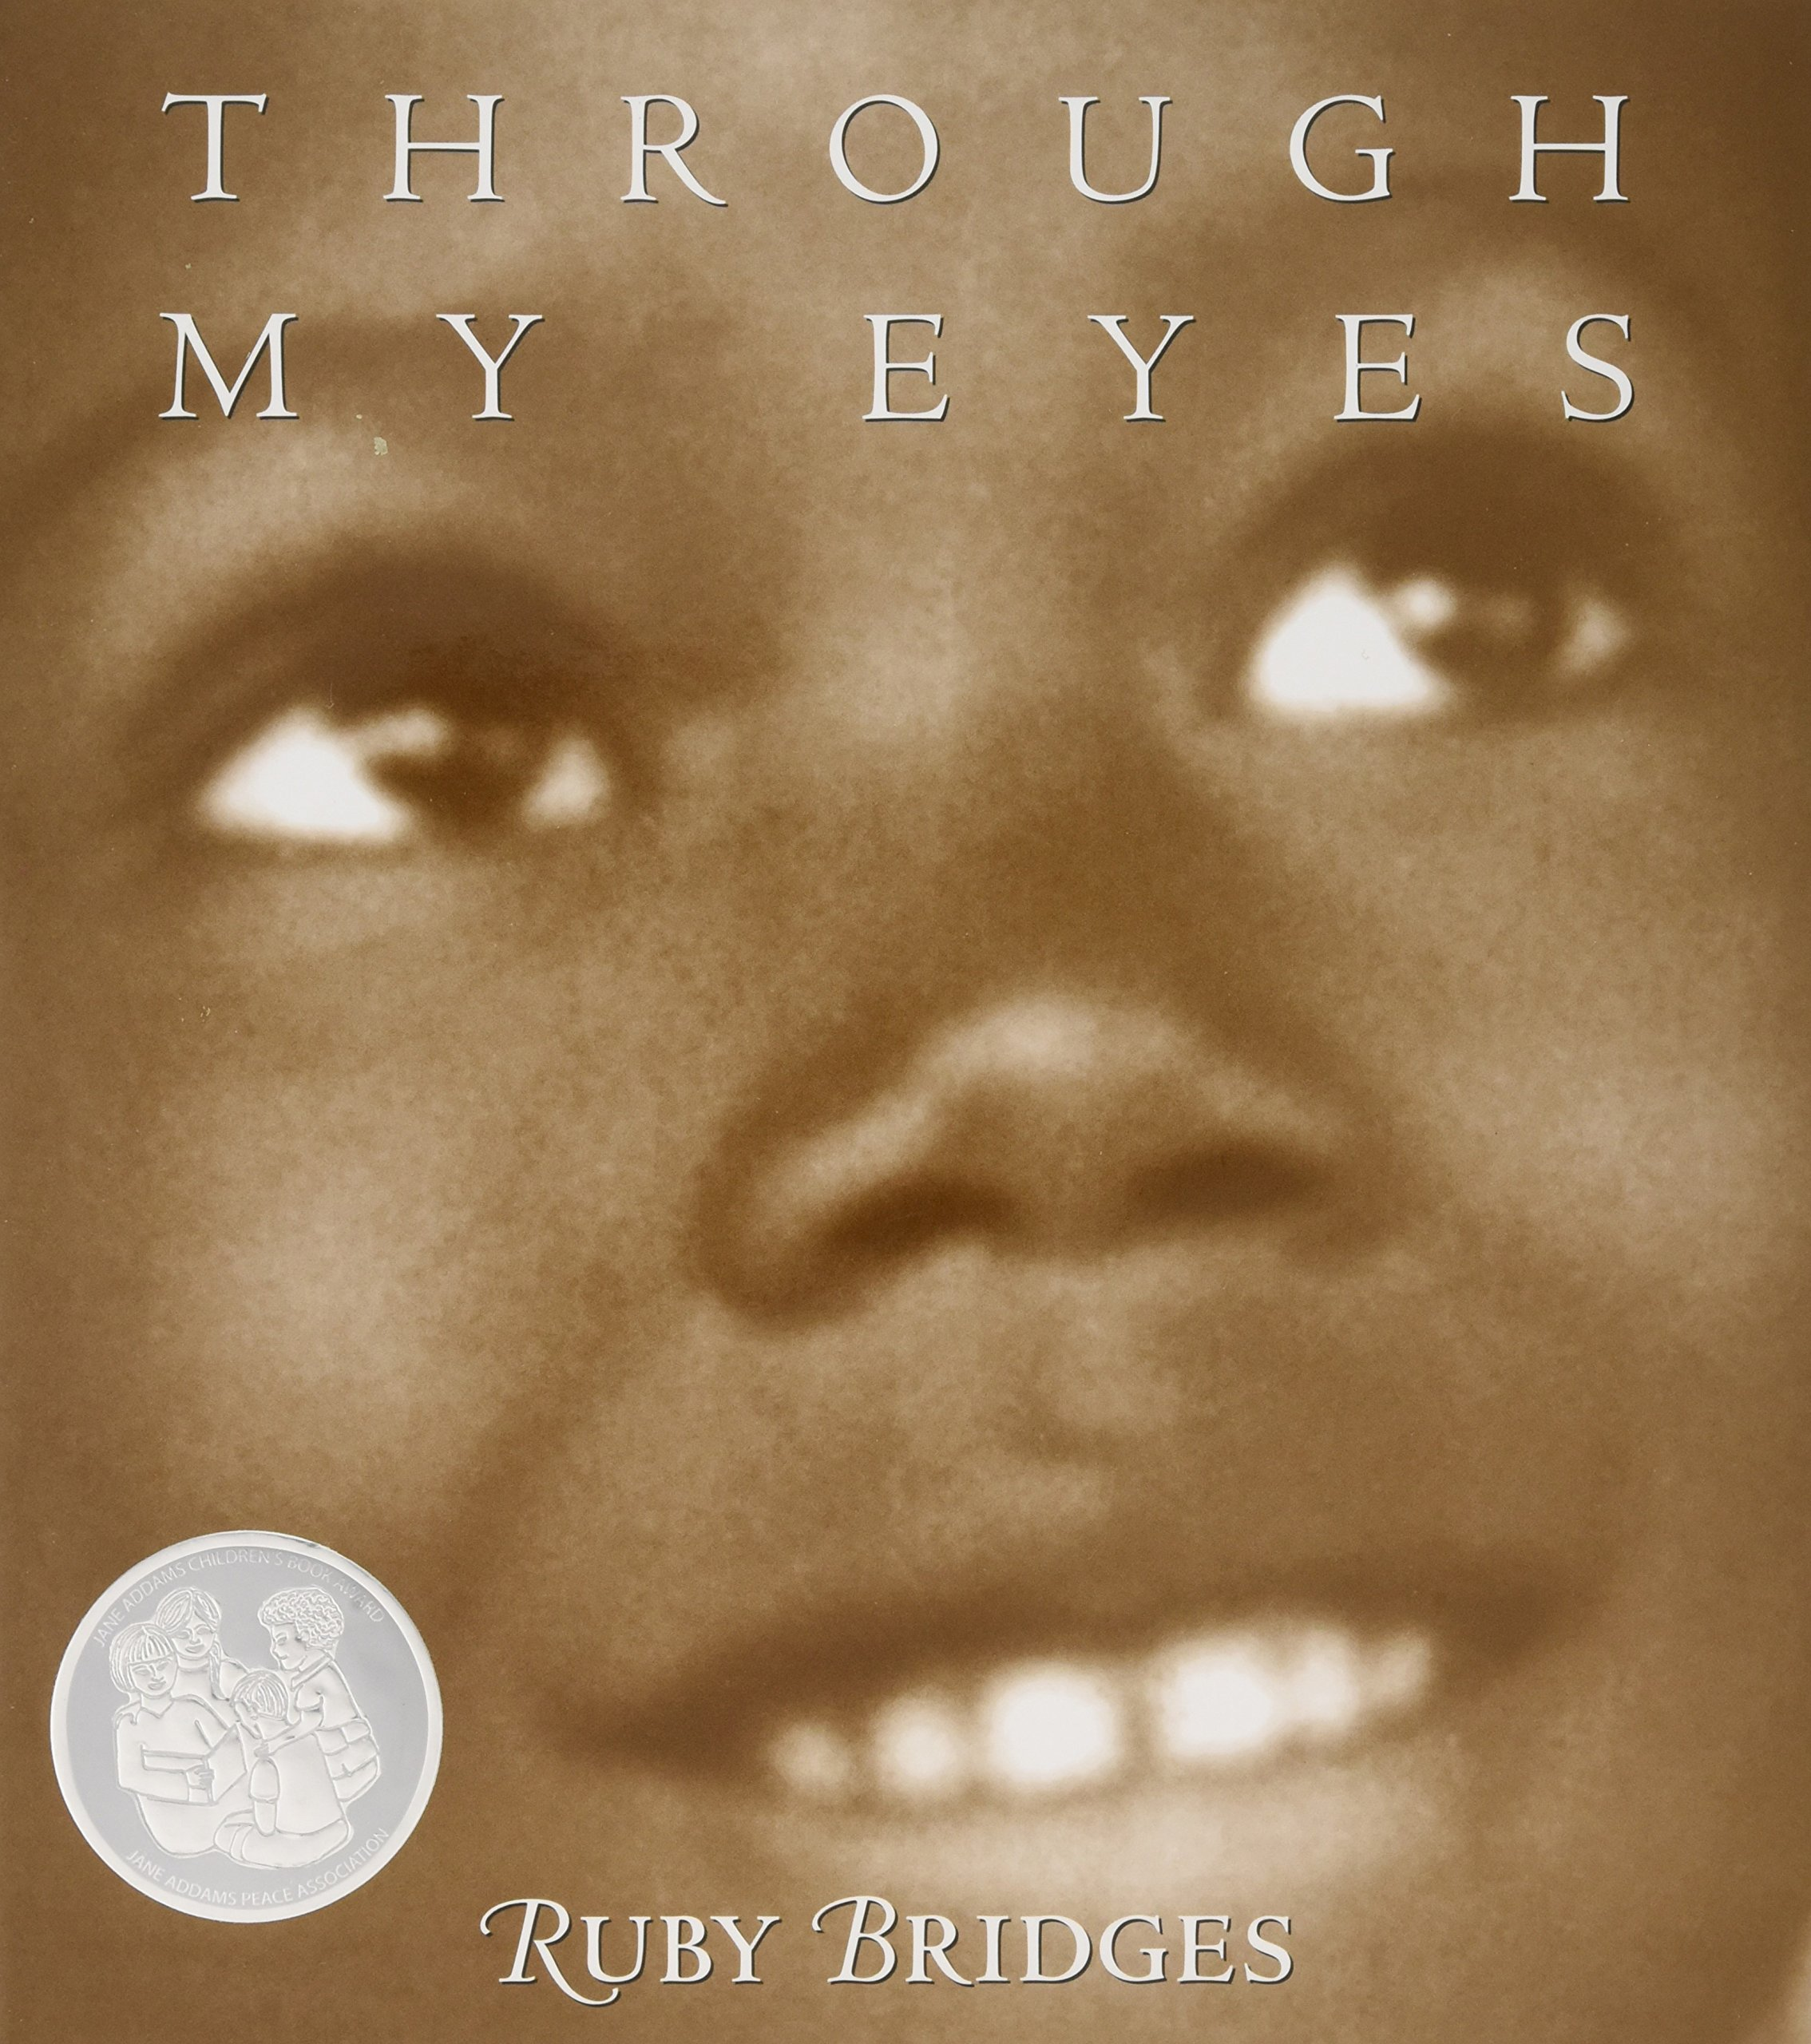 Amazon.com: Ruby Bridges: Books, Biography, Blog, Audiobooks, Kindle